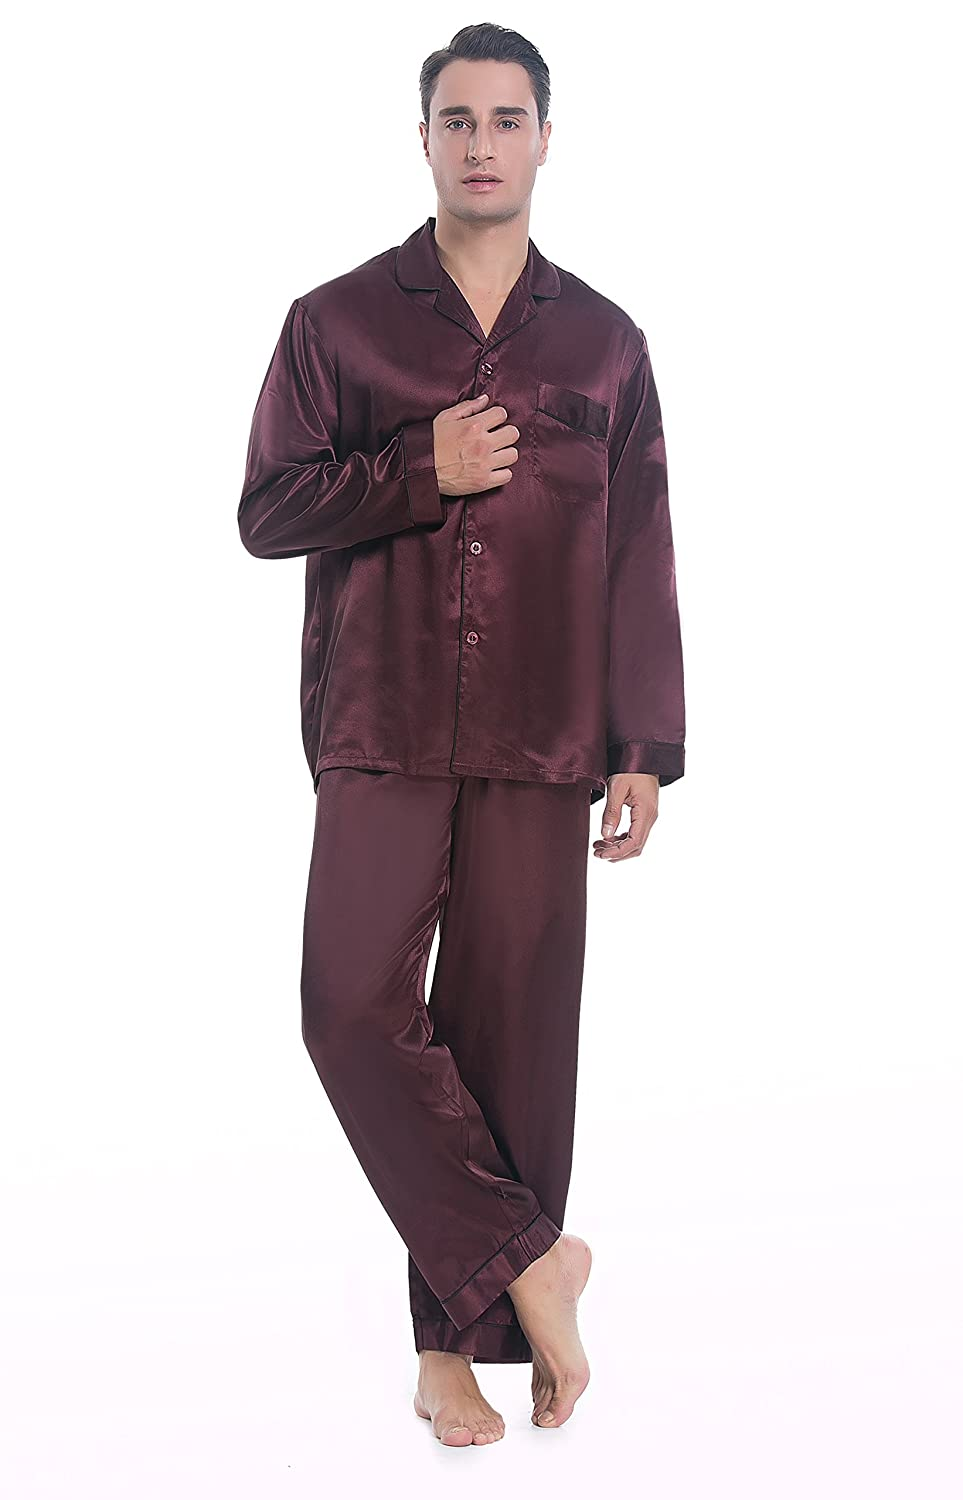 Understand Everything About Men's Silk Pajamas